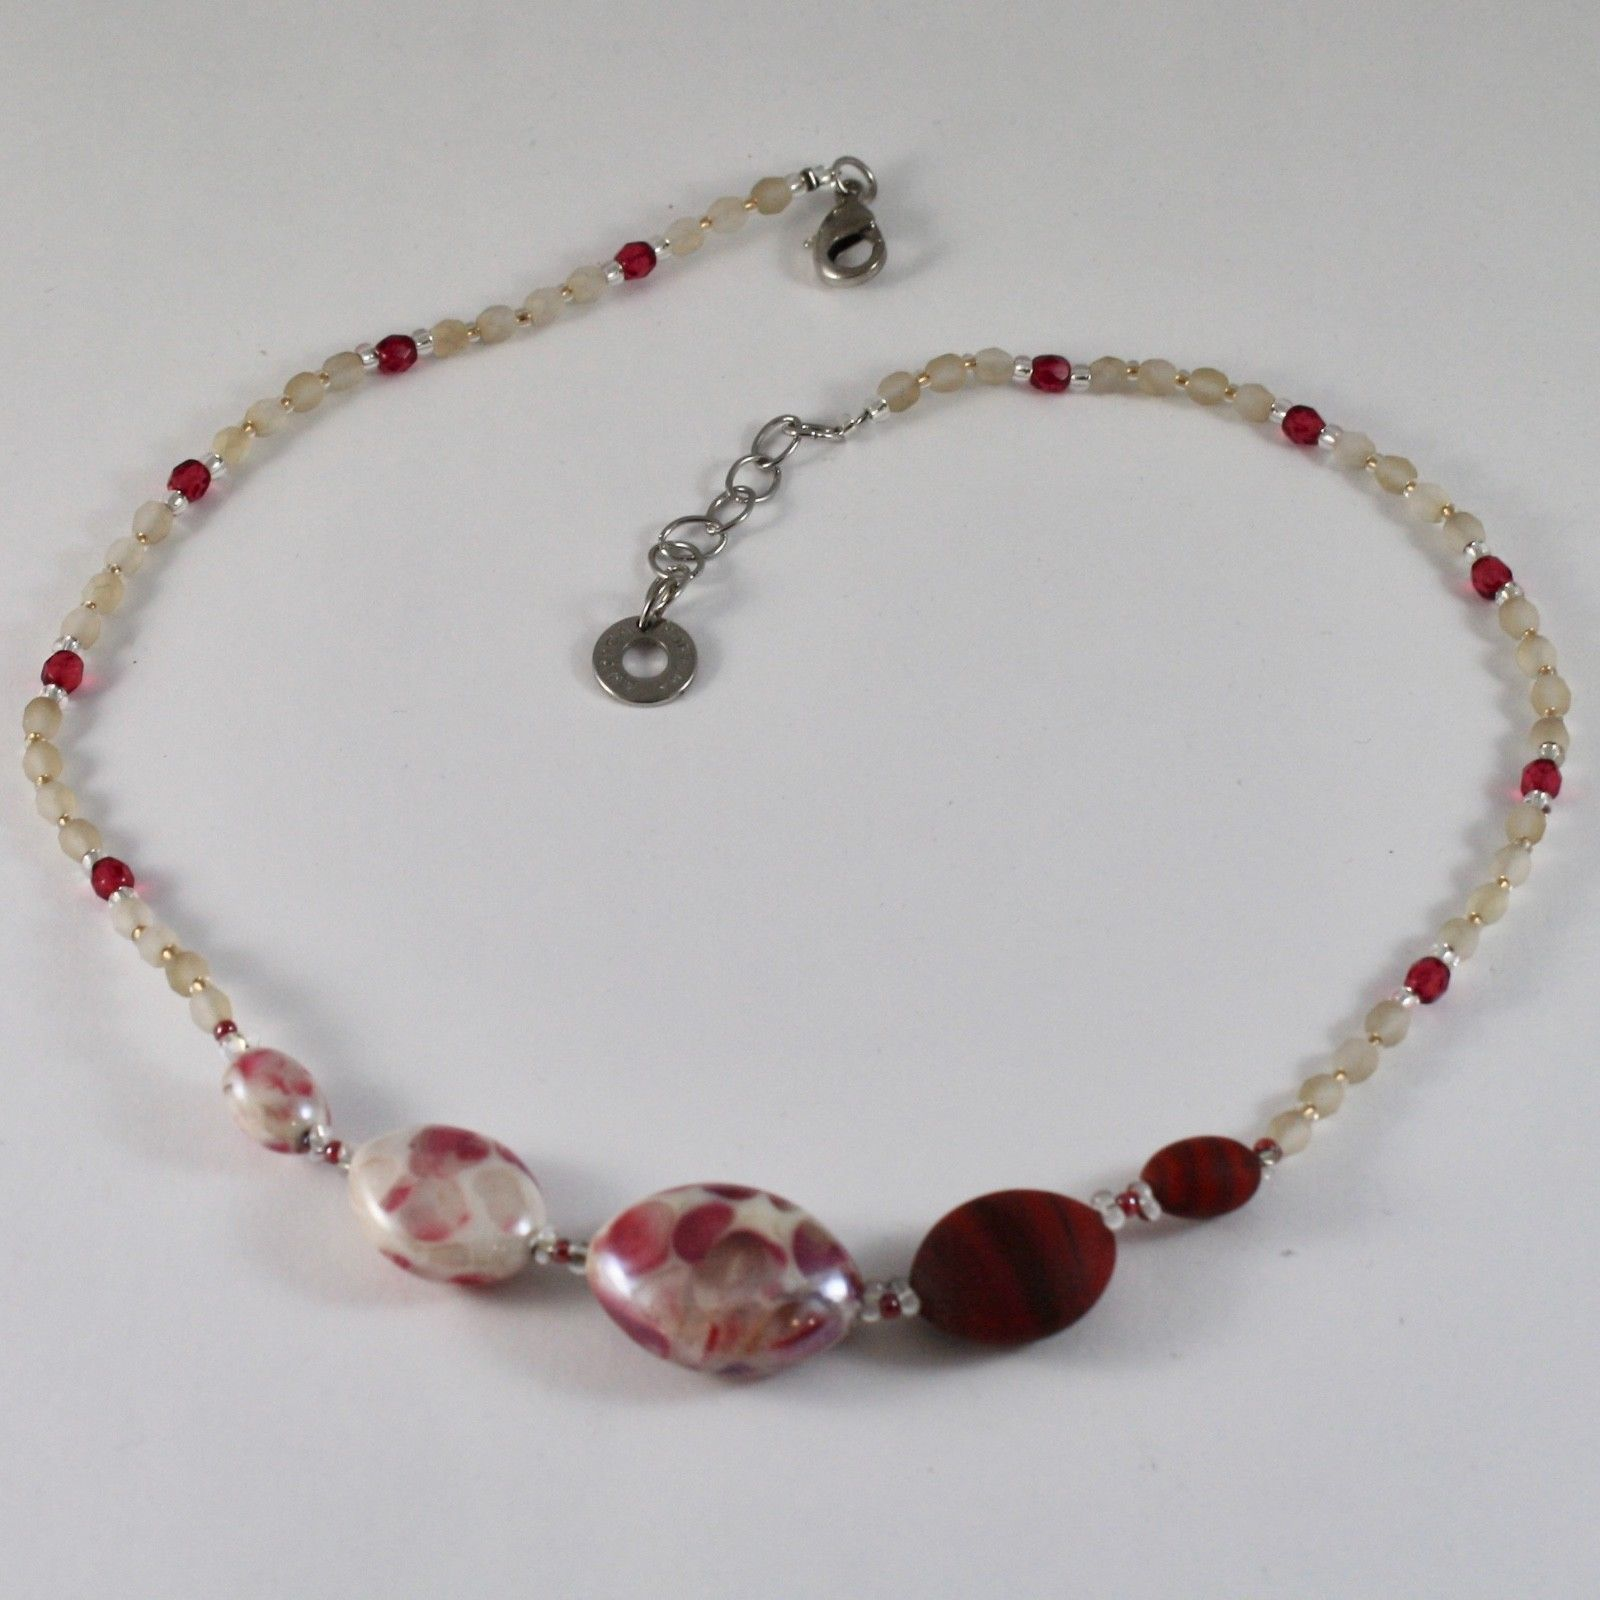 ANTICA MURRINA VENEZIA NECKLACE WITH WHITE AND RED MURANO GLASS CO925A11